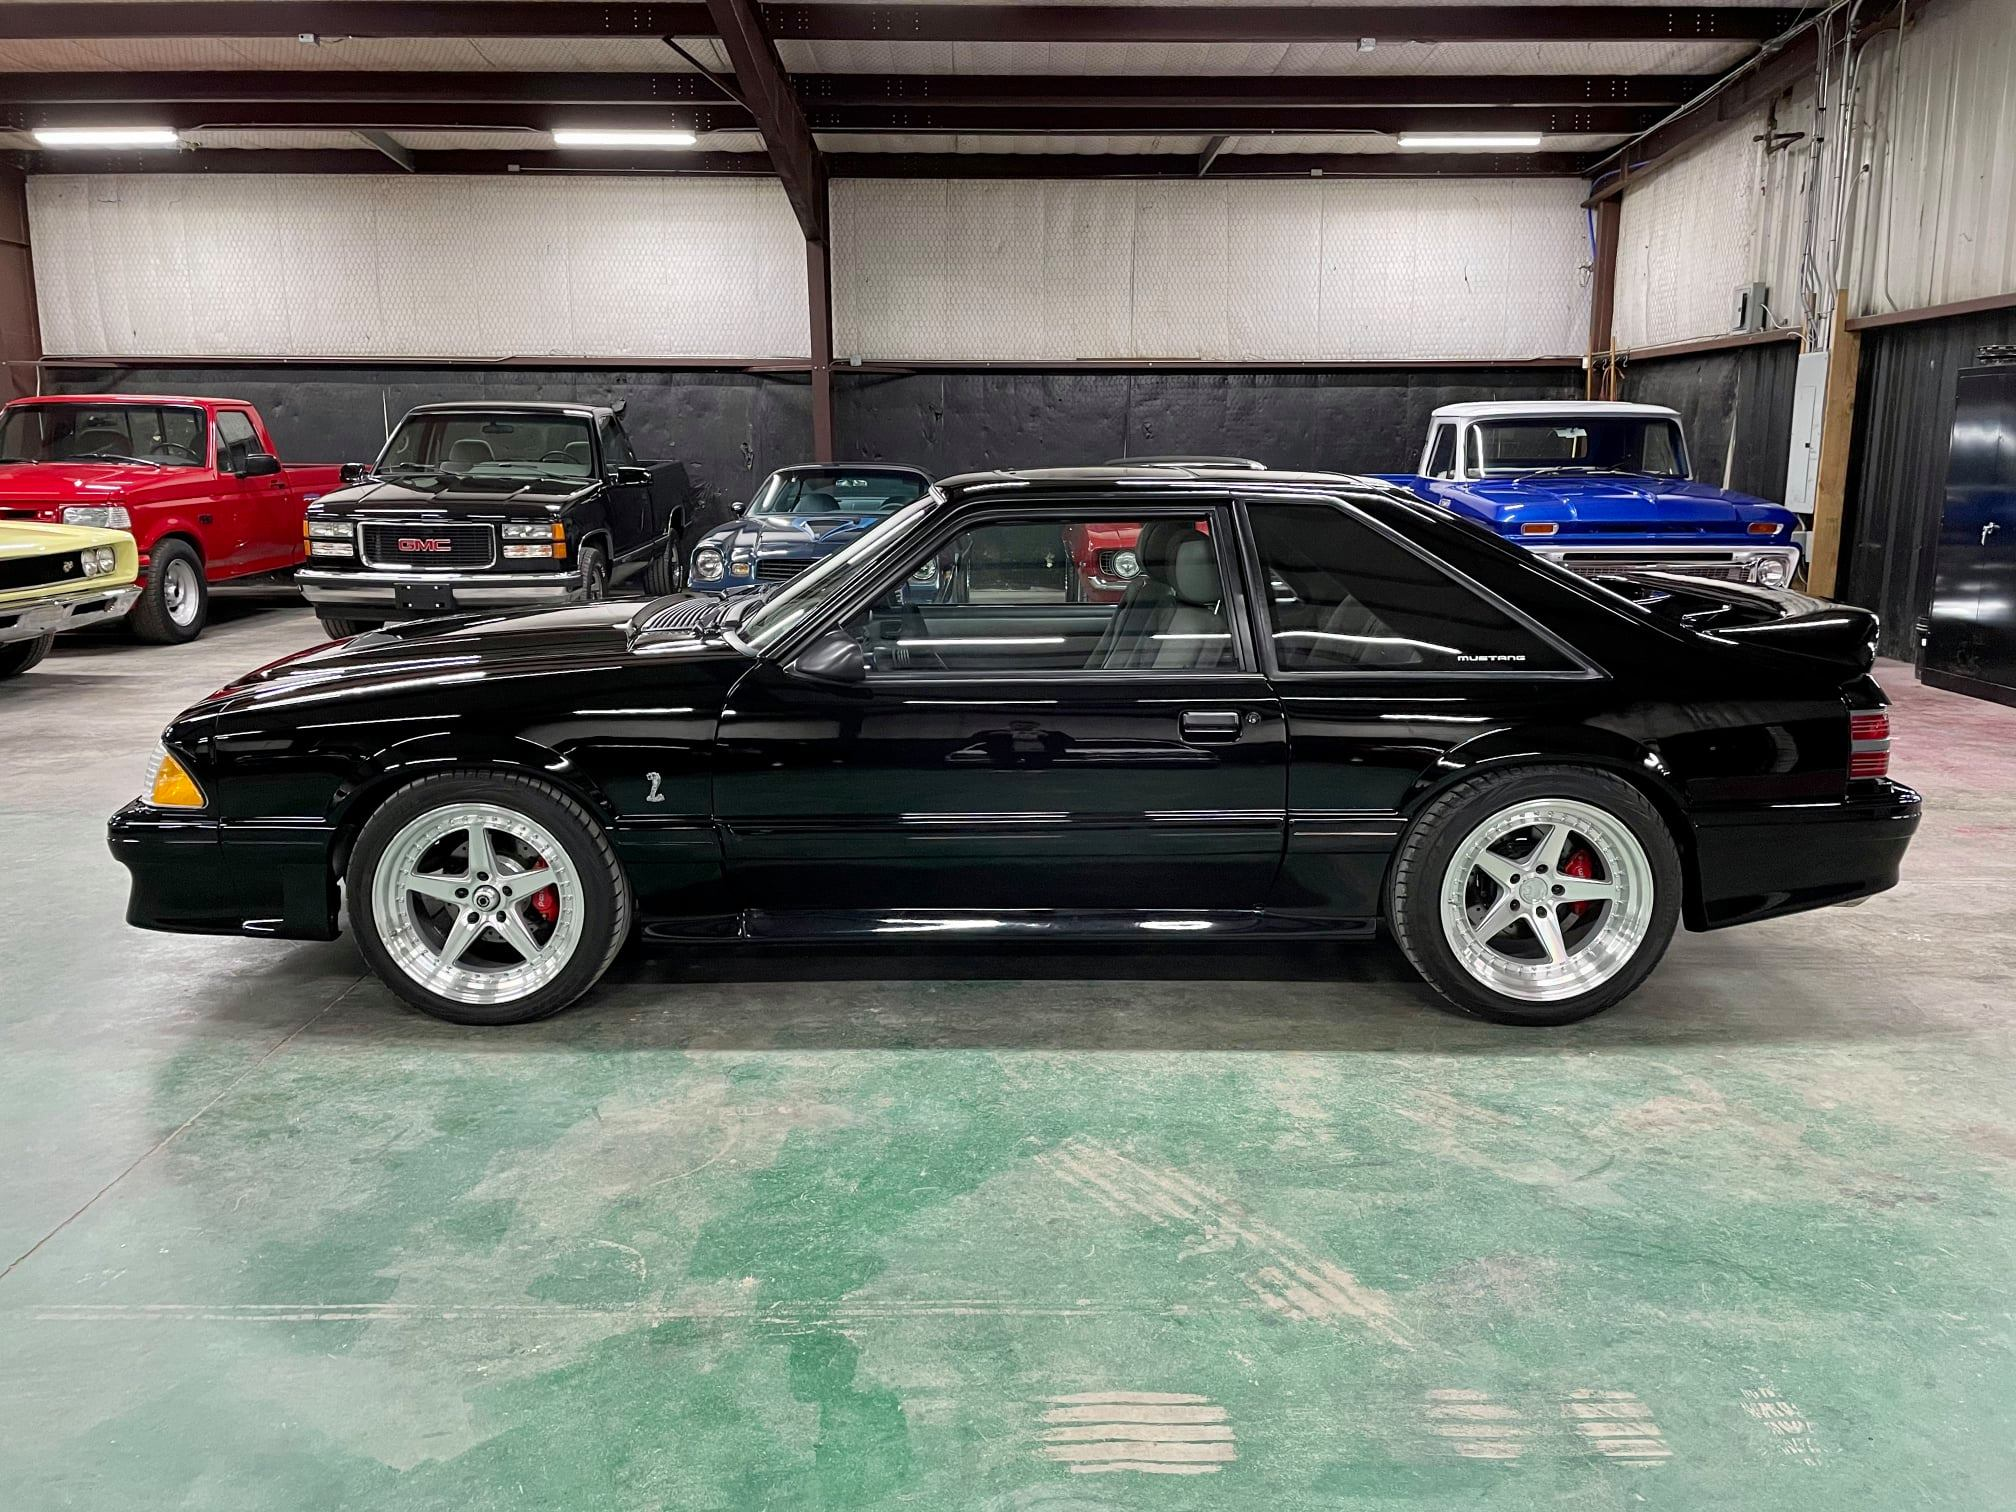 How Much Is A 1989 Ford Mustang Gt Worth